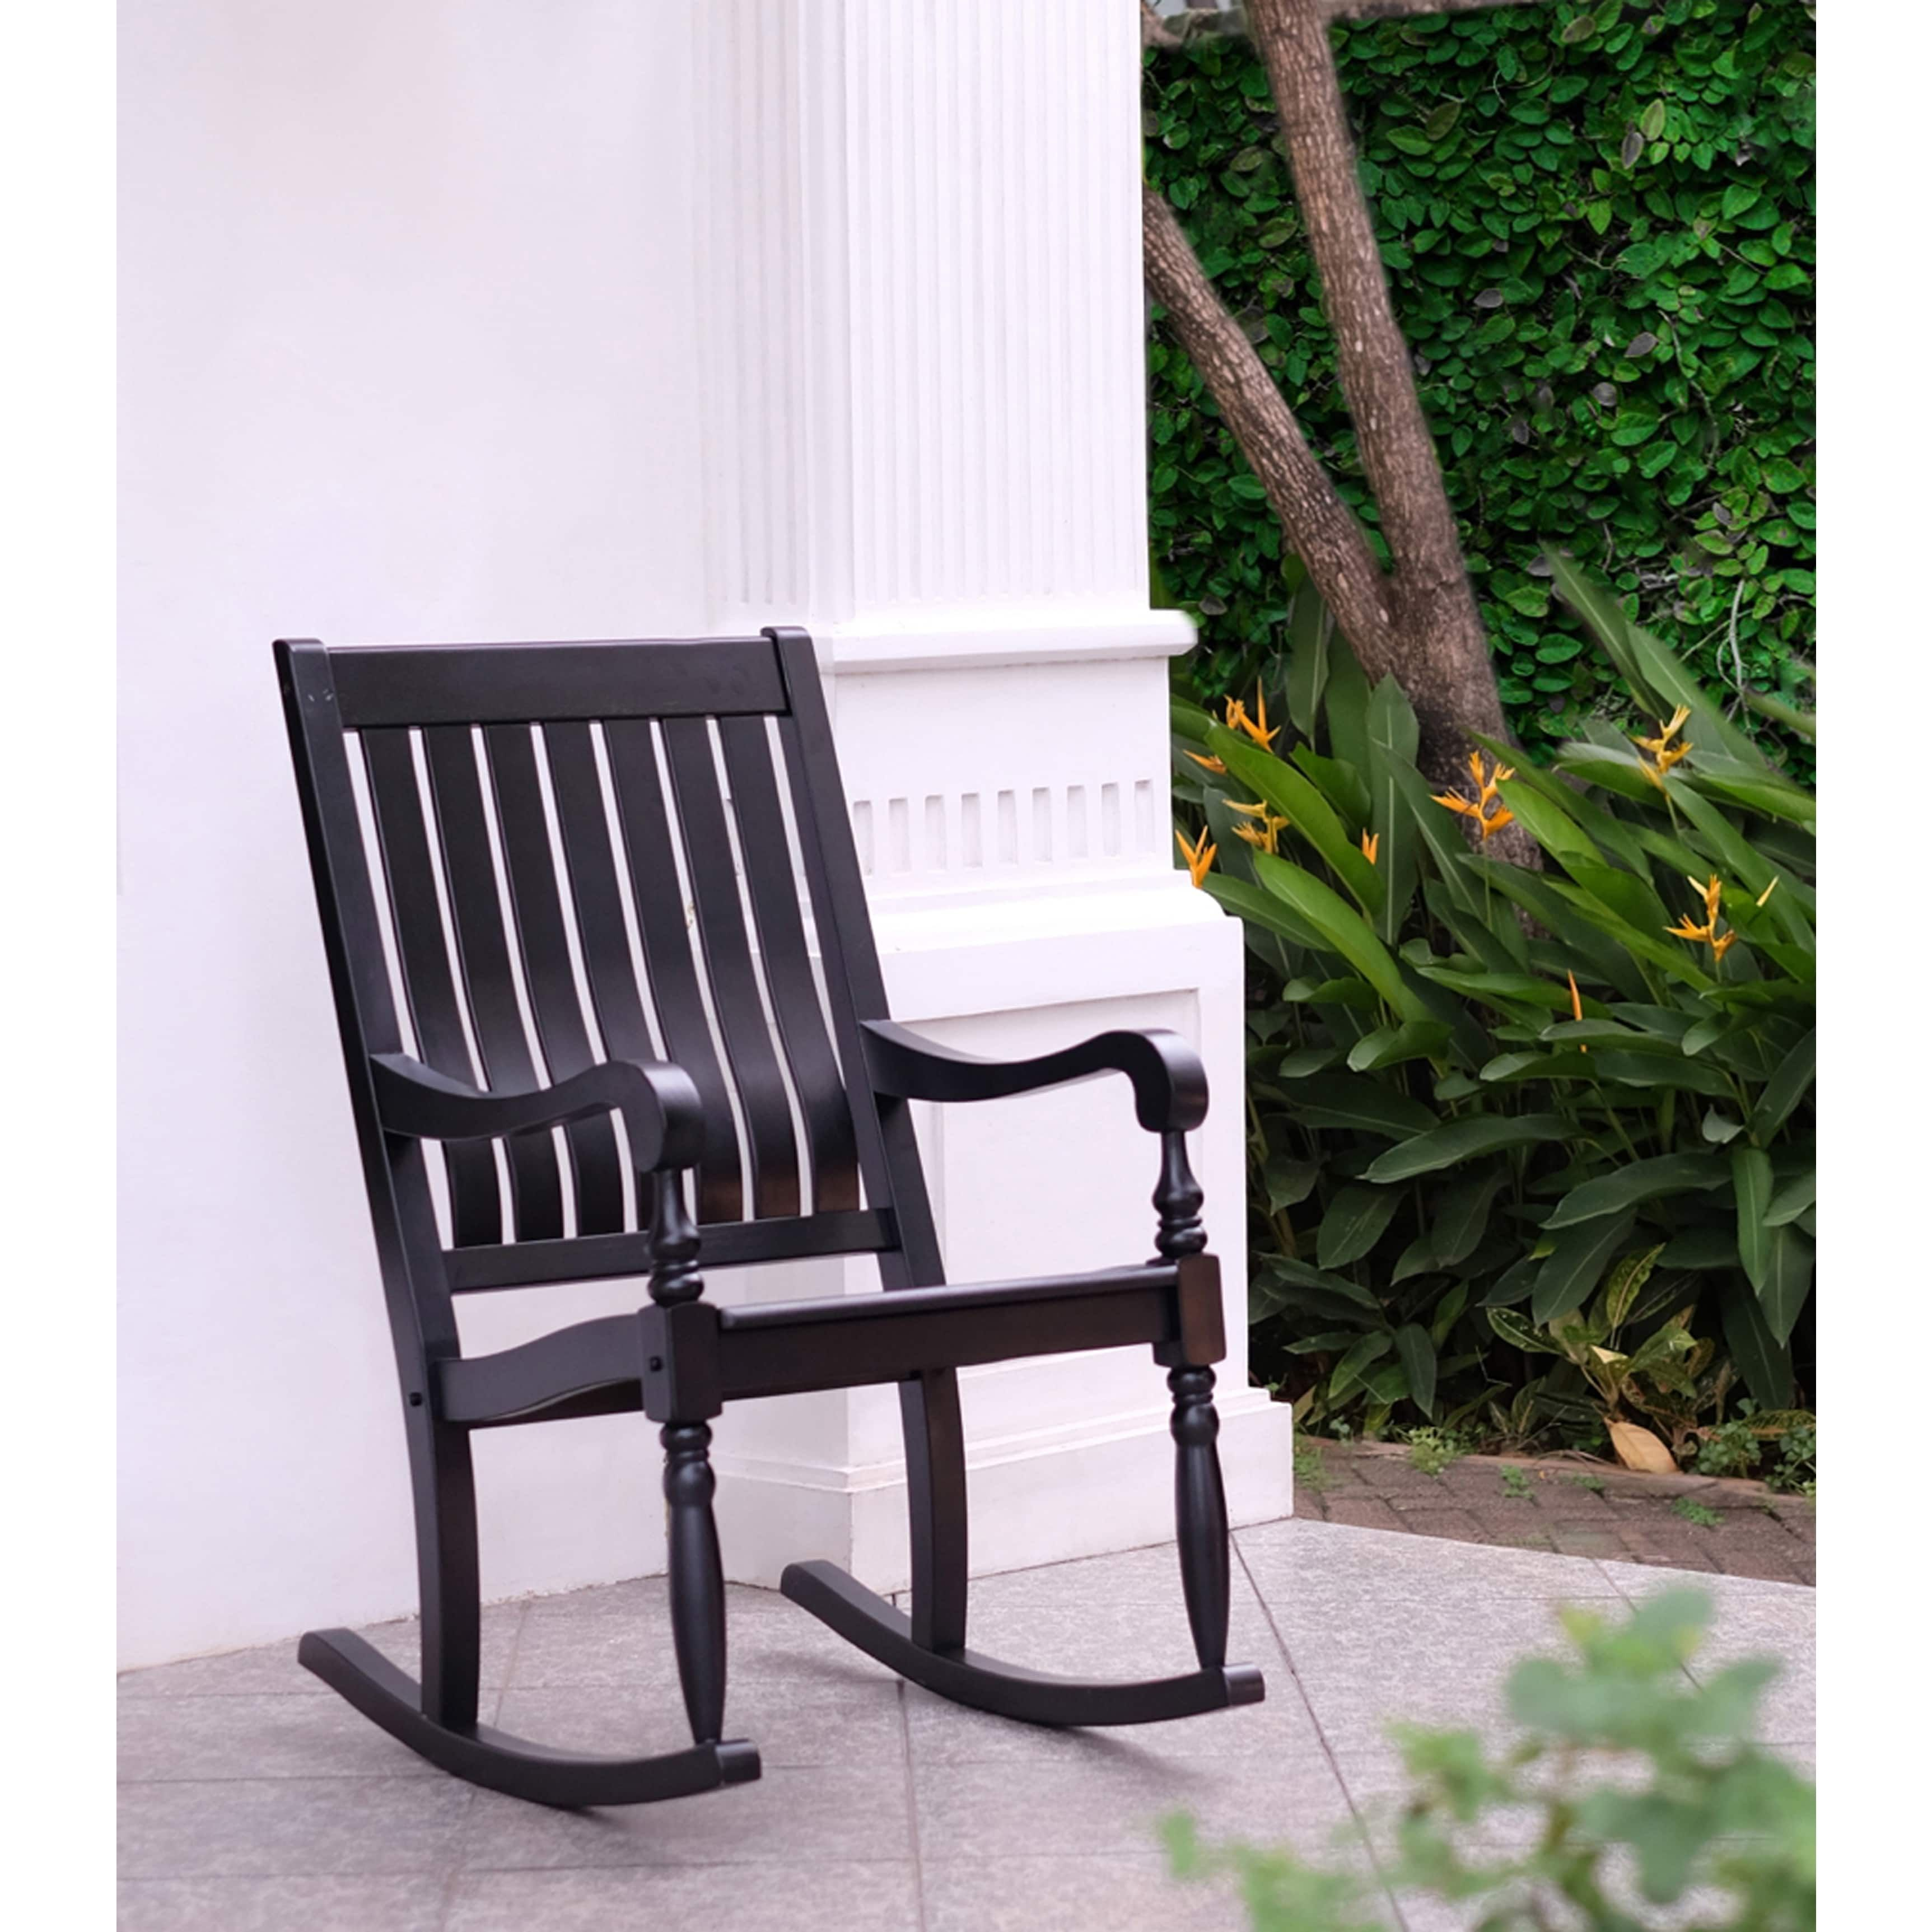 Peachy Lyon Black Mahogany Porch Rocking Chair Free Shipping Unemploymentrelief Wooden Chair Designs For Living Room Unemploymentrelieforg